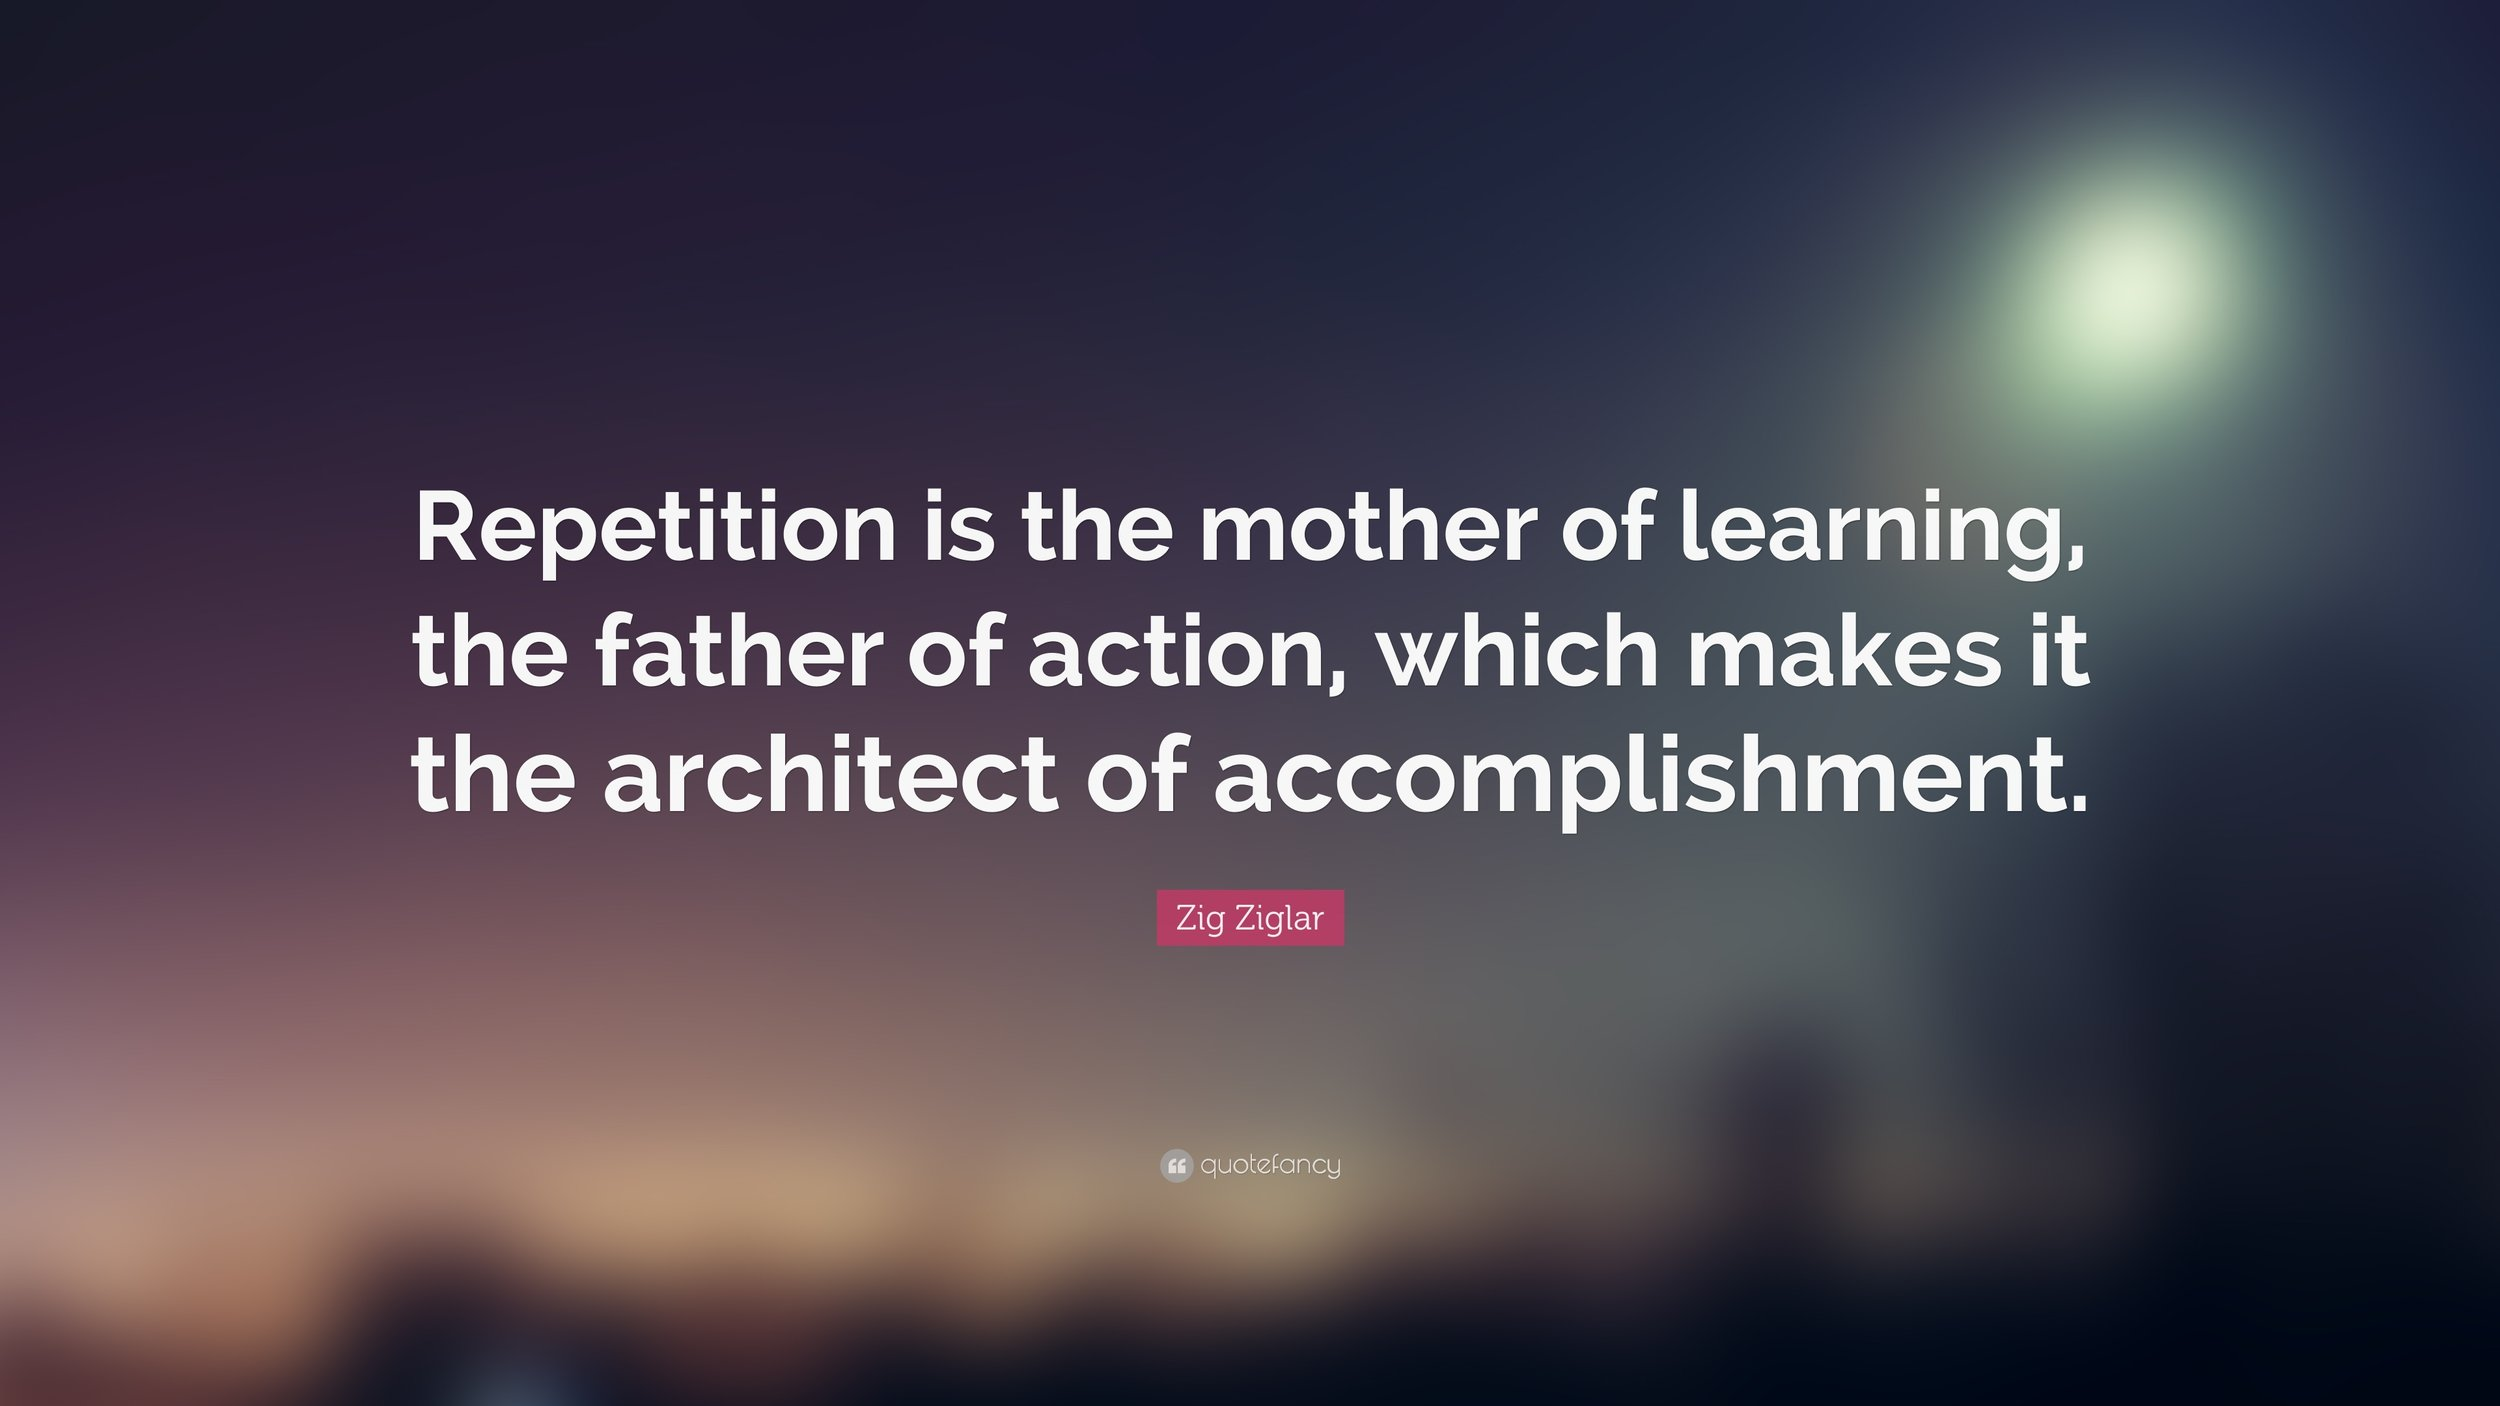 Zig Ziglar Quote - Repetition is the mother of learning, the father of action, which makes it the architect of accomplishment.